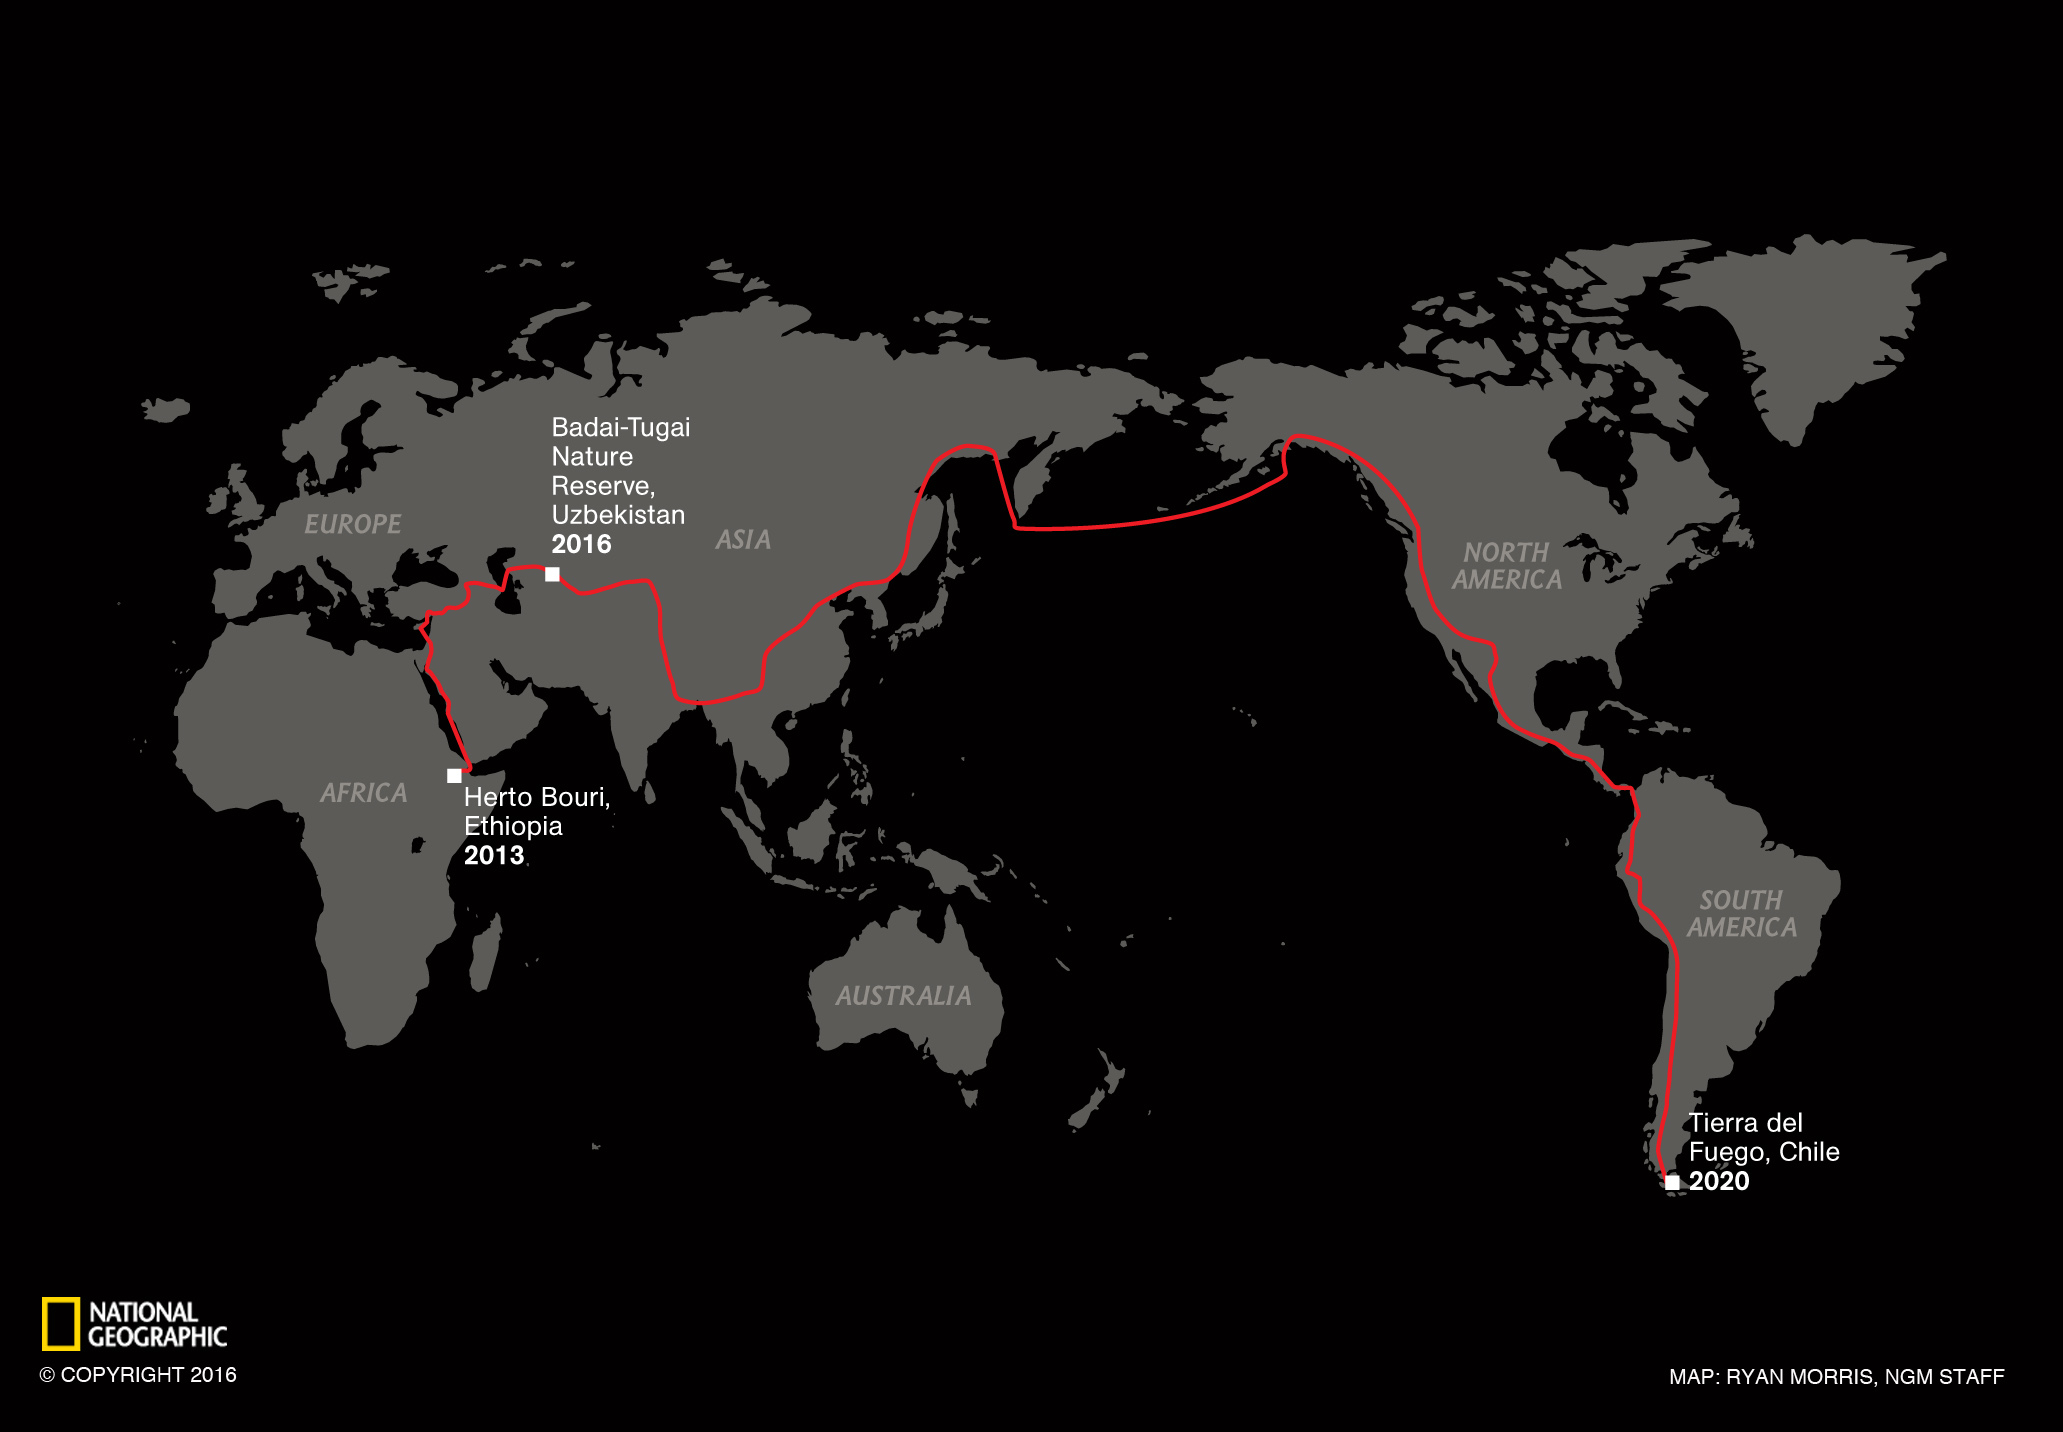 Map of Paul Salopek's Out of Eden Walk Journey.Credit: Ryan Morris/National Geographic